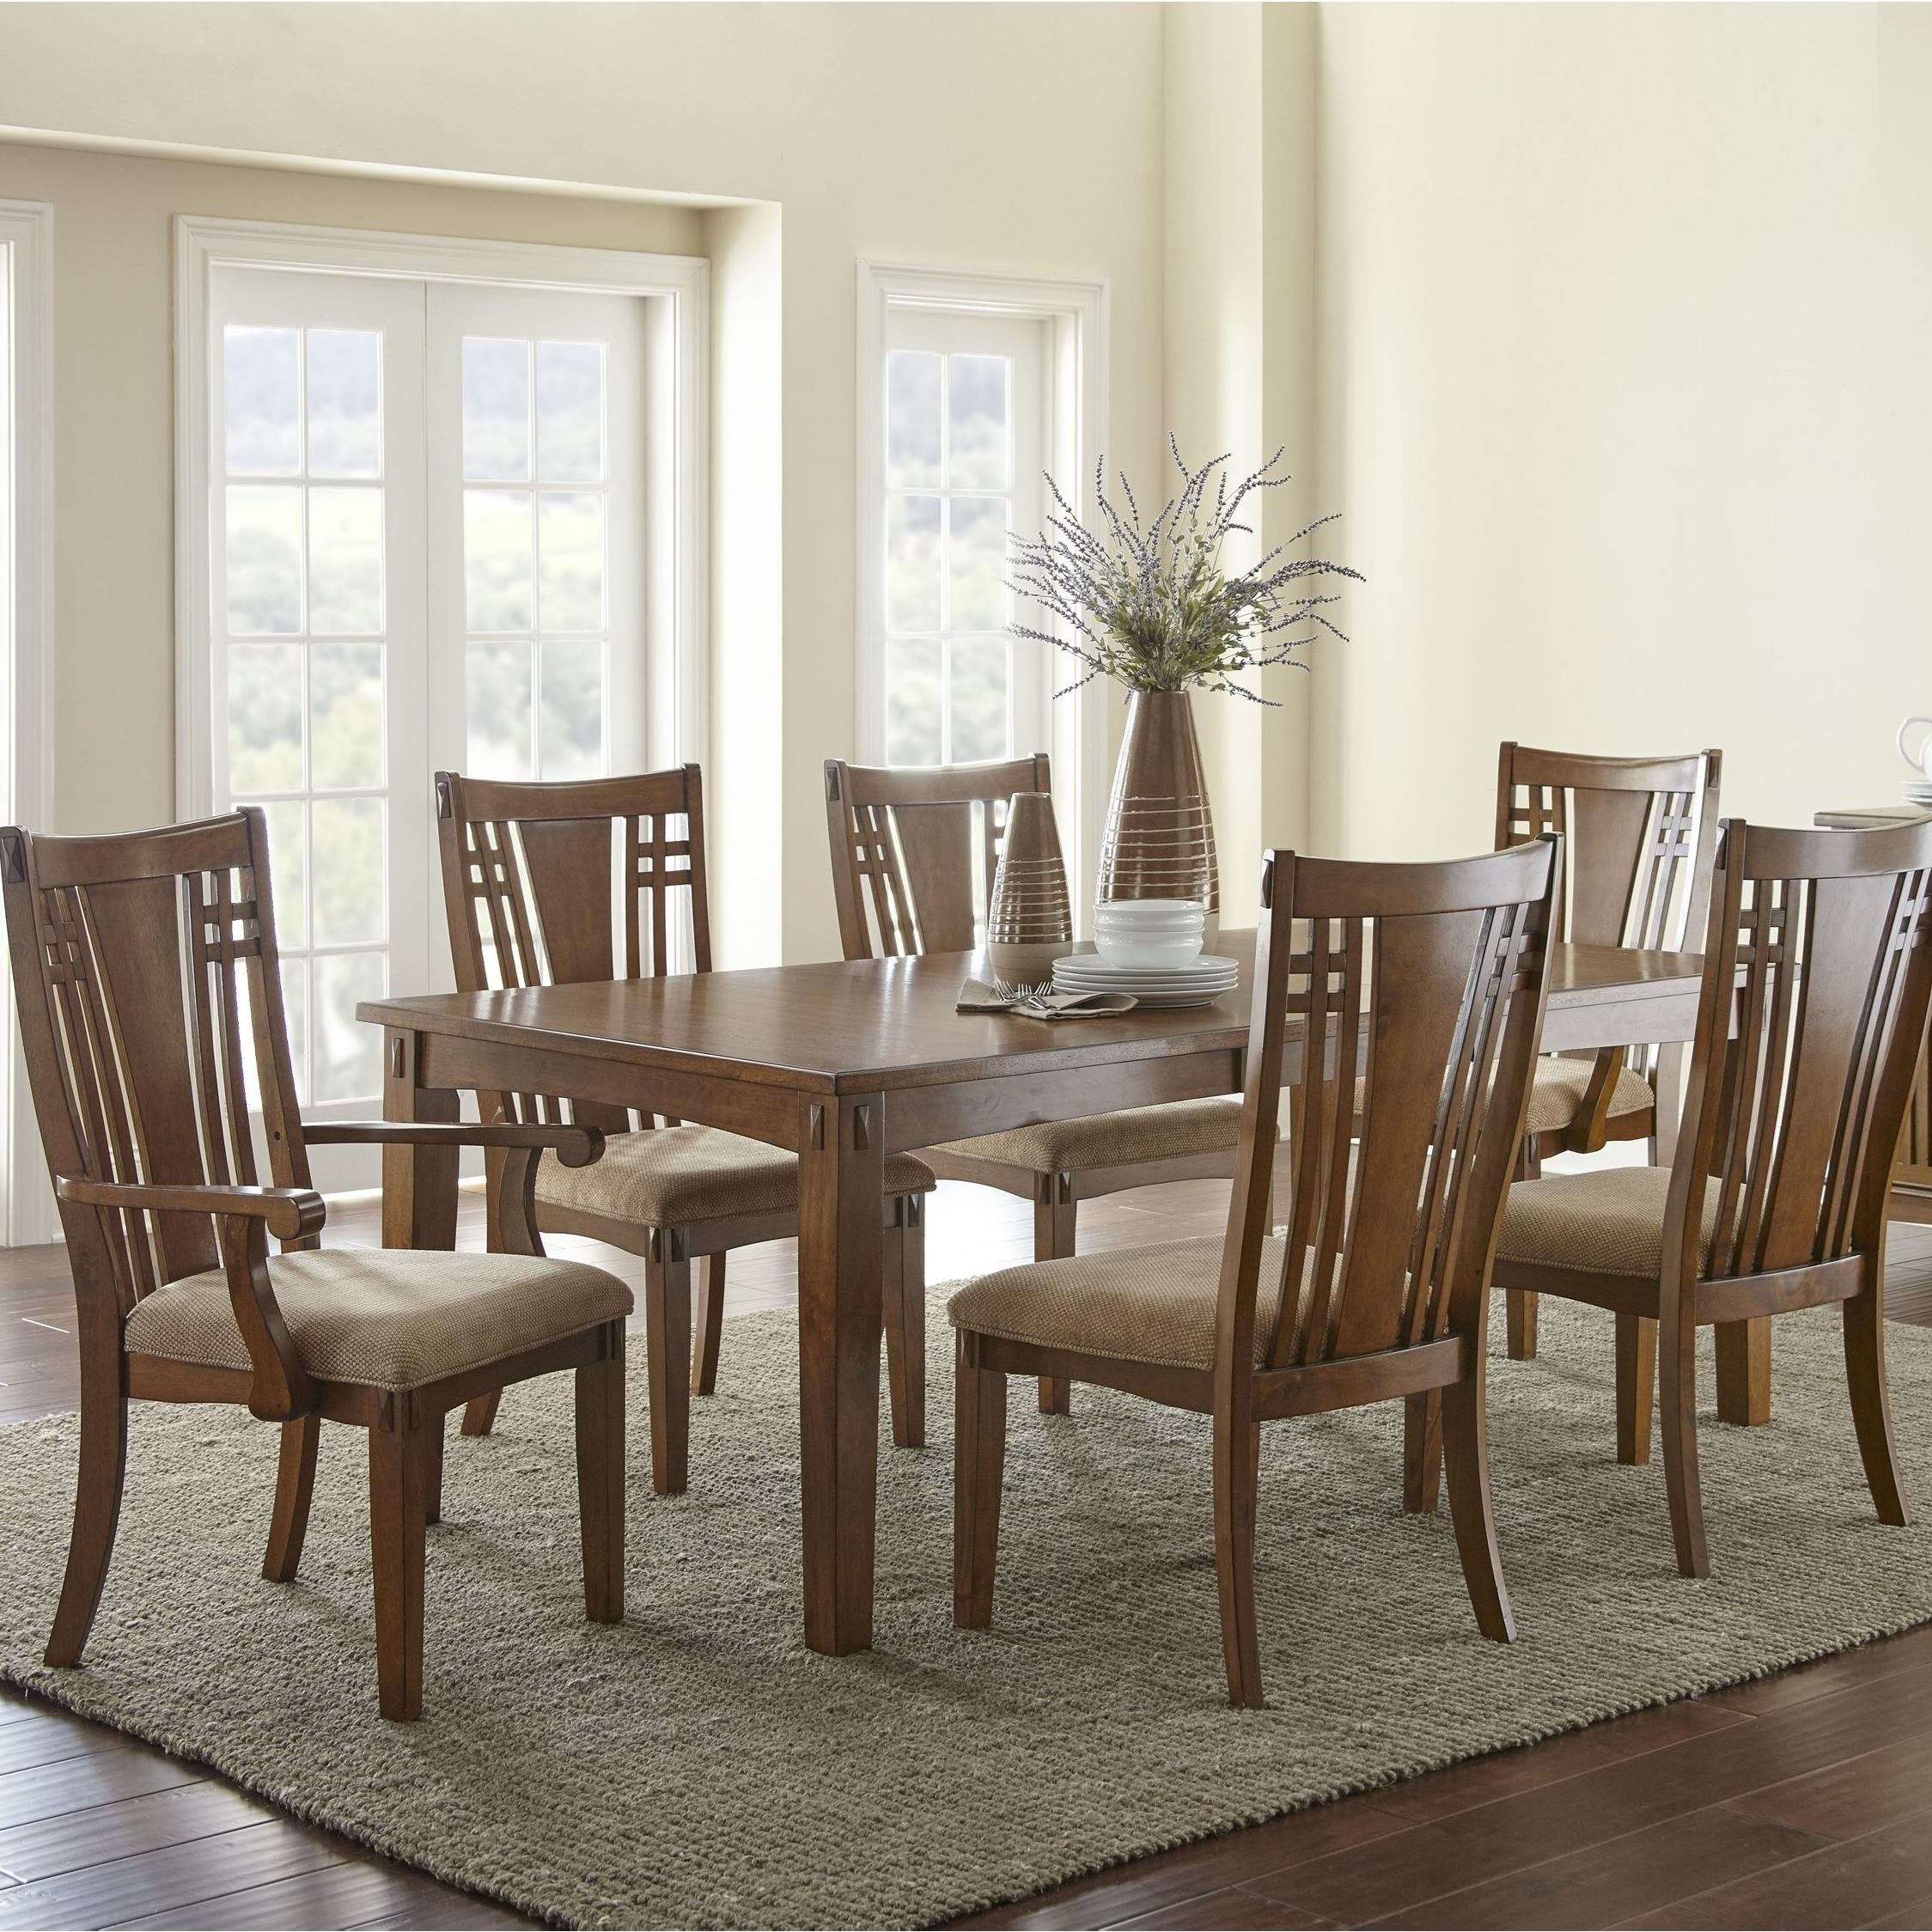 Steve Silver Larkin LK550 Mission 7 Piece Rectangular Table And Chair Set  With 20